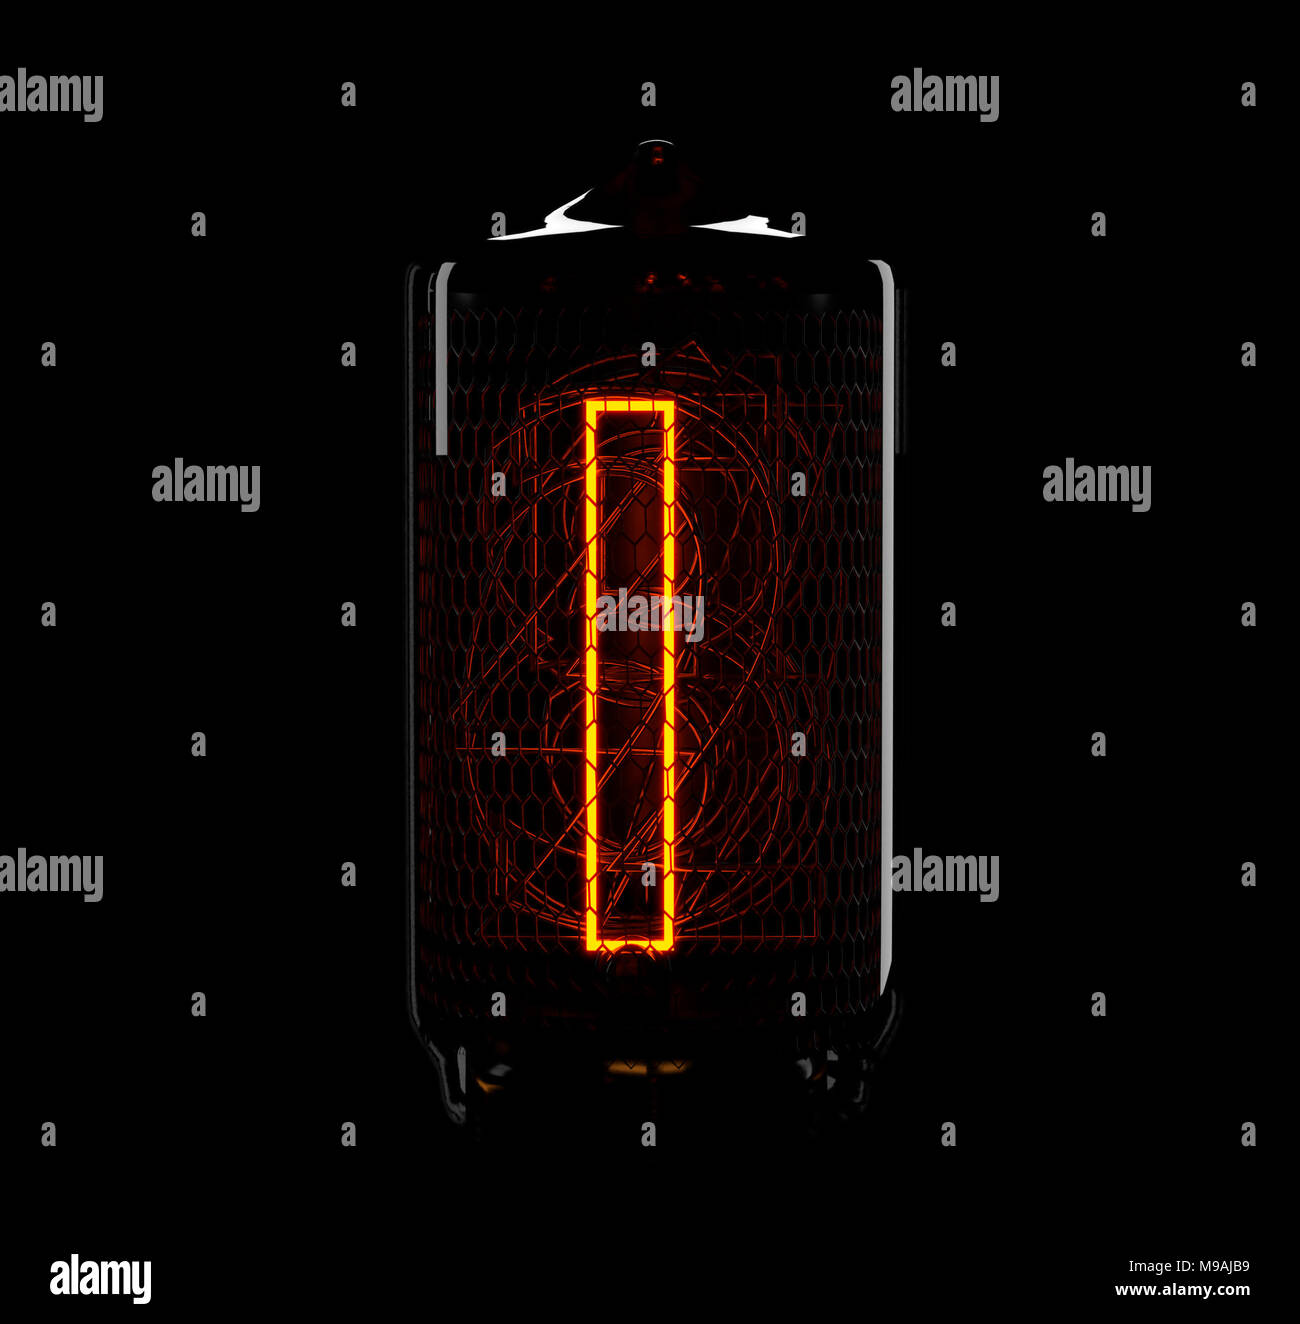 Nixie Tube Stock Photos Images Alamy Schematic Page 1 Indicator The Number One Of Retro 3d Render Image